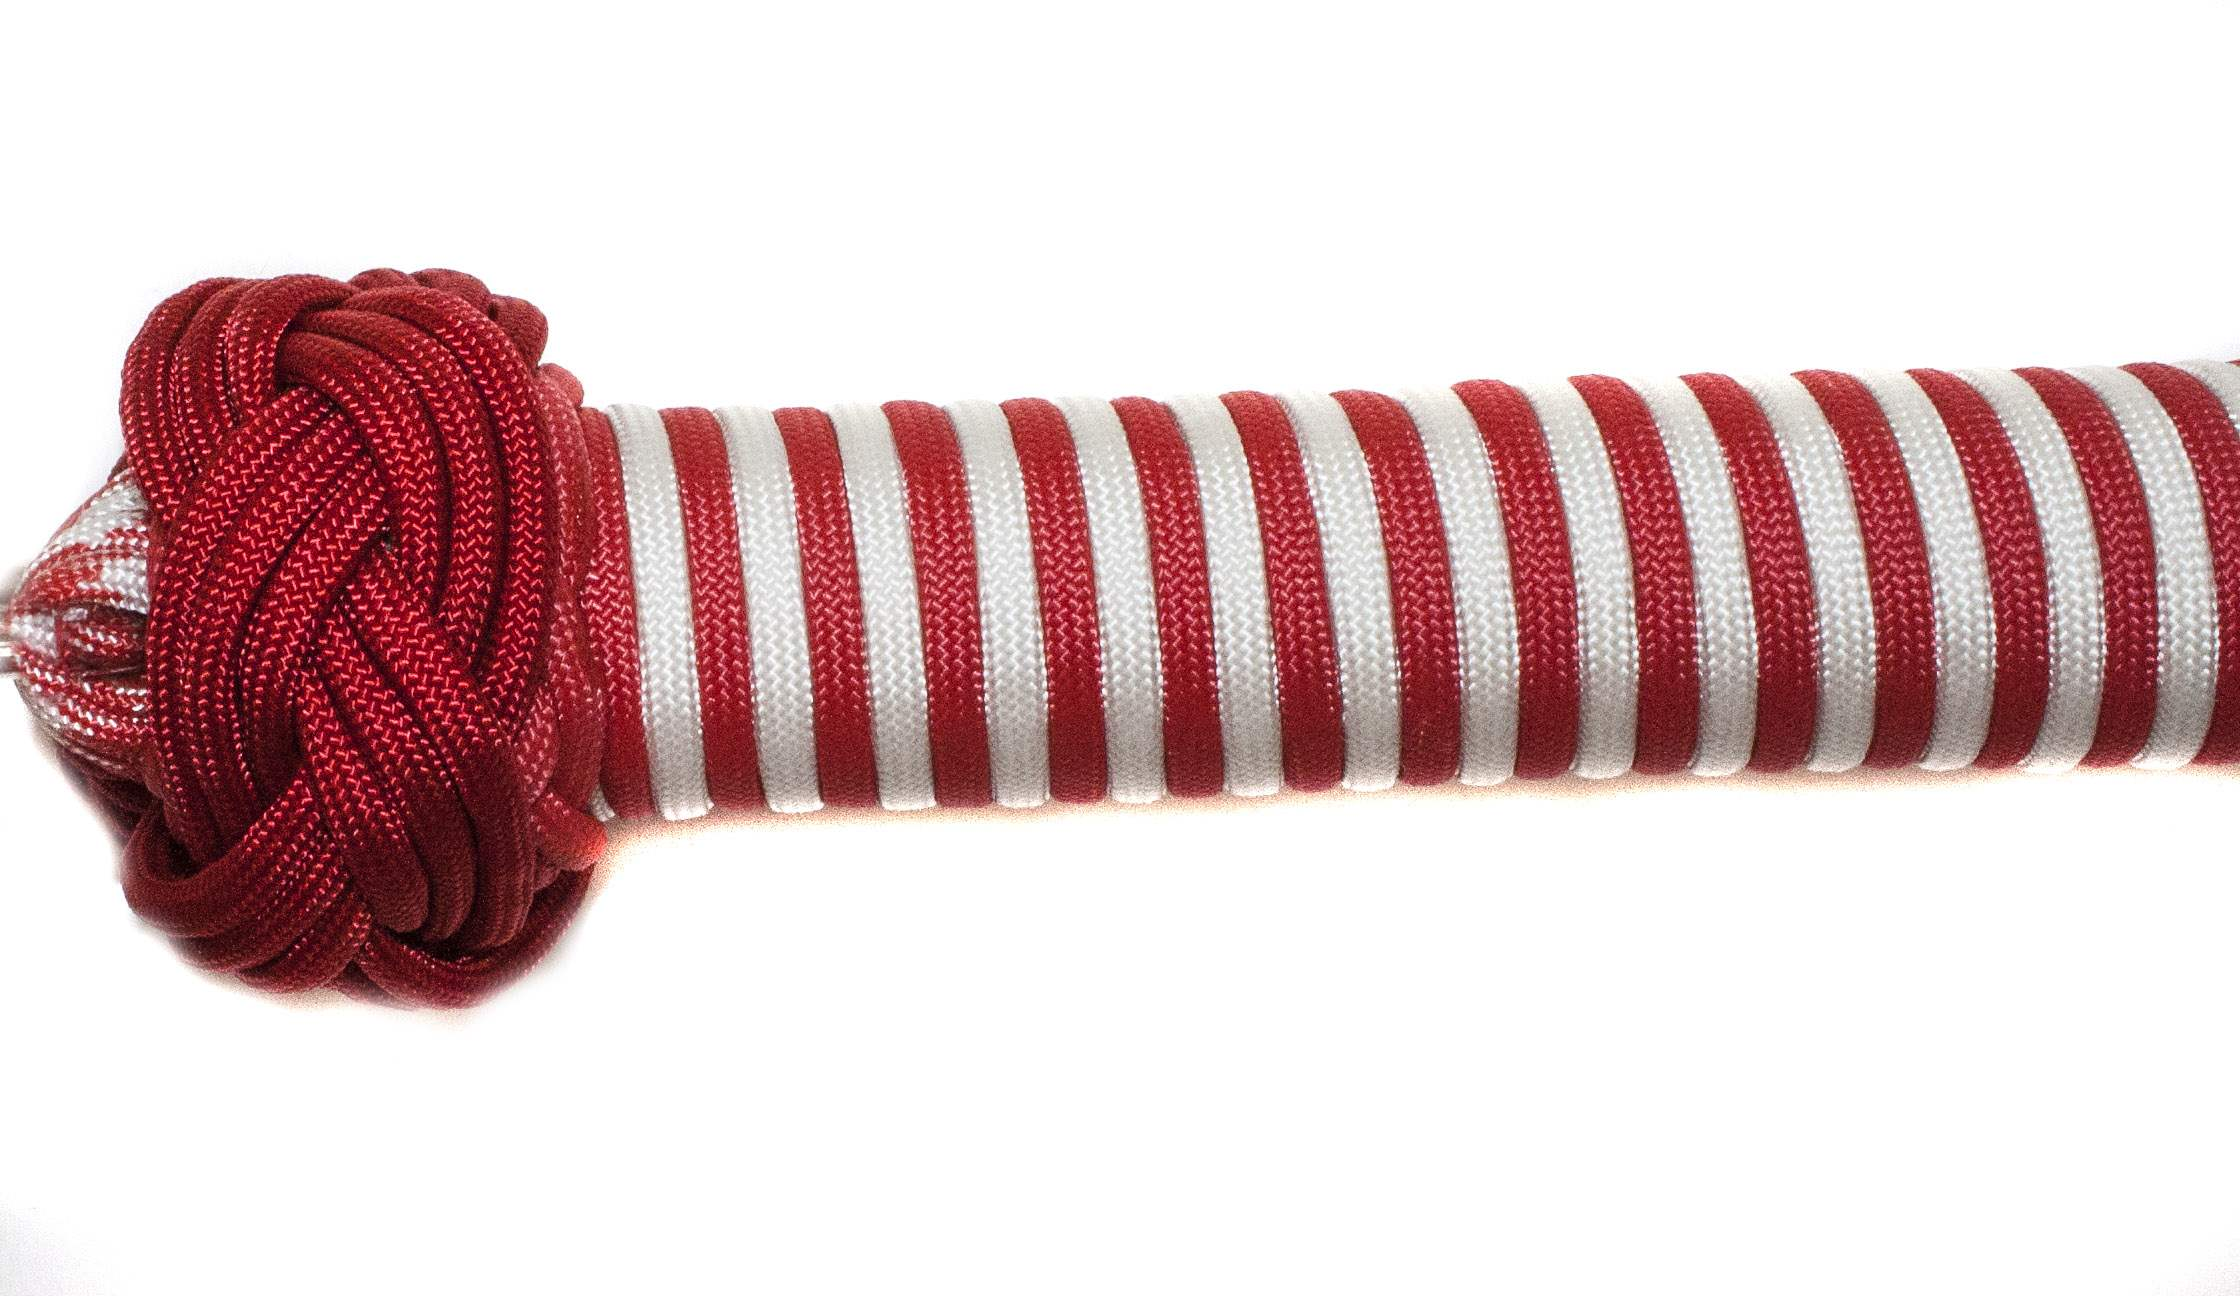 6 things you can do with a turk 39 s head knot paracord planet for Things you can do with paracord